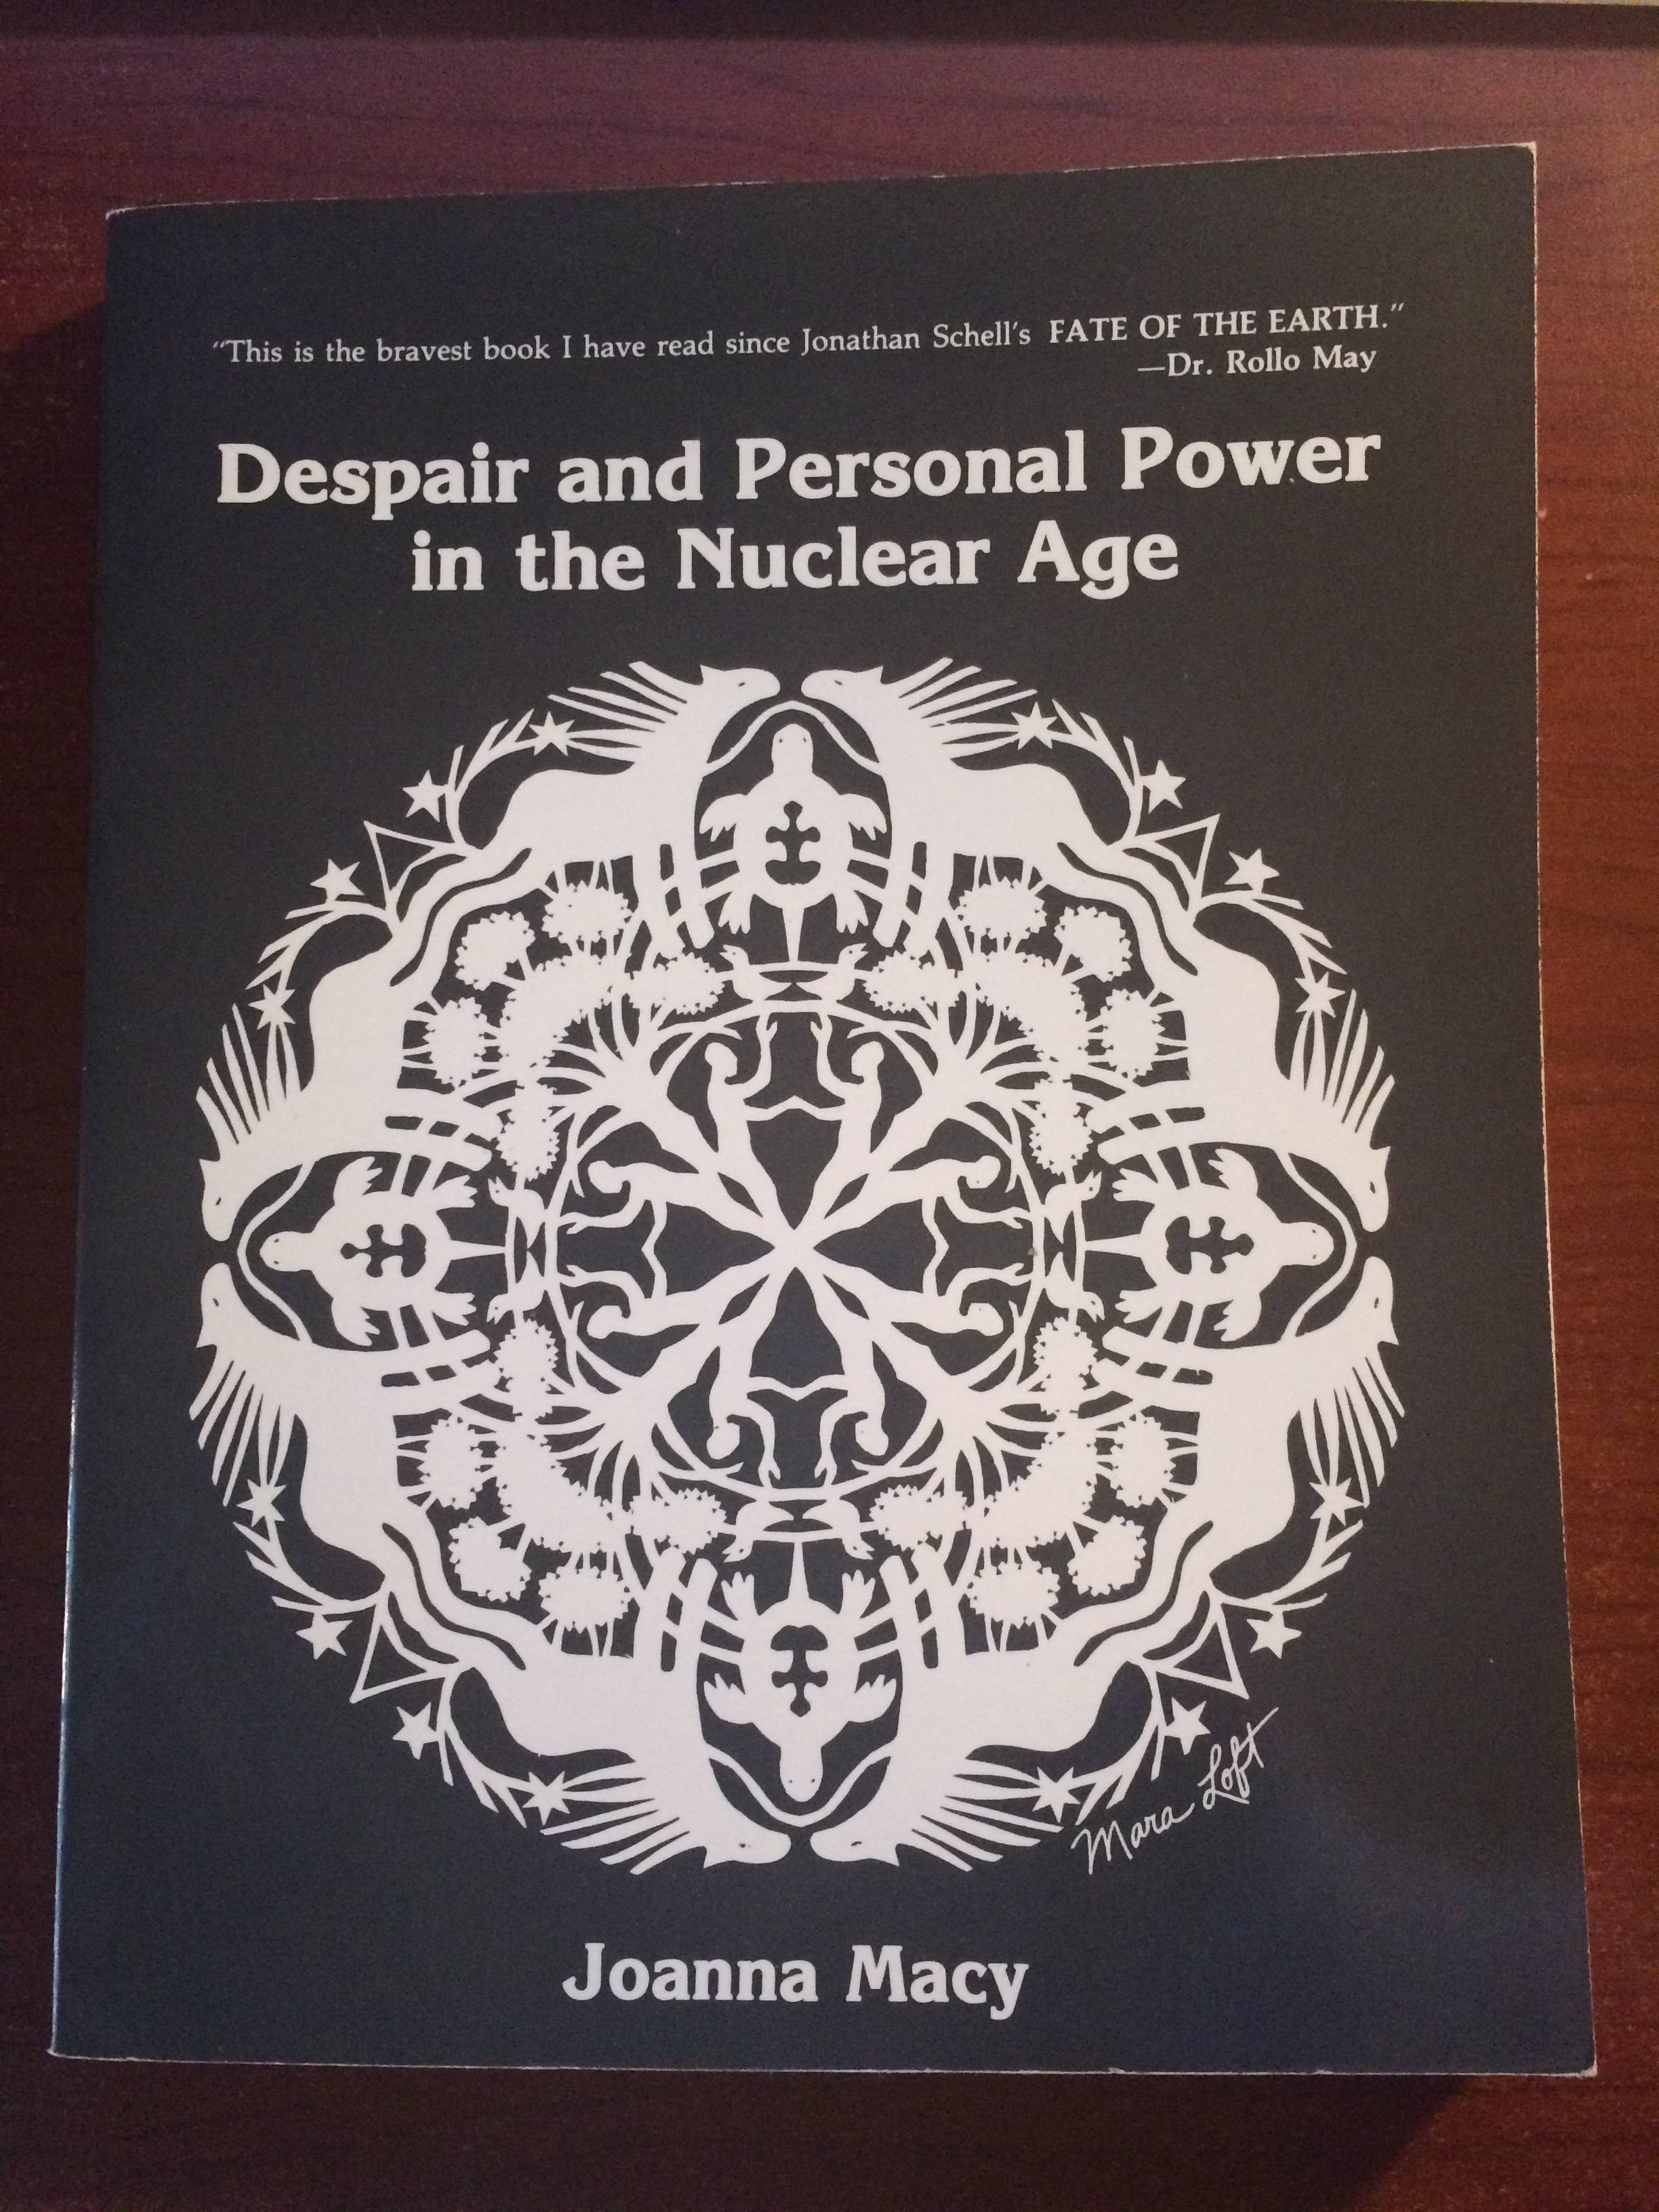 despair and personal power in the nuclear age front cover.jpg